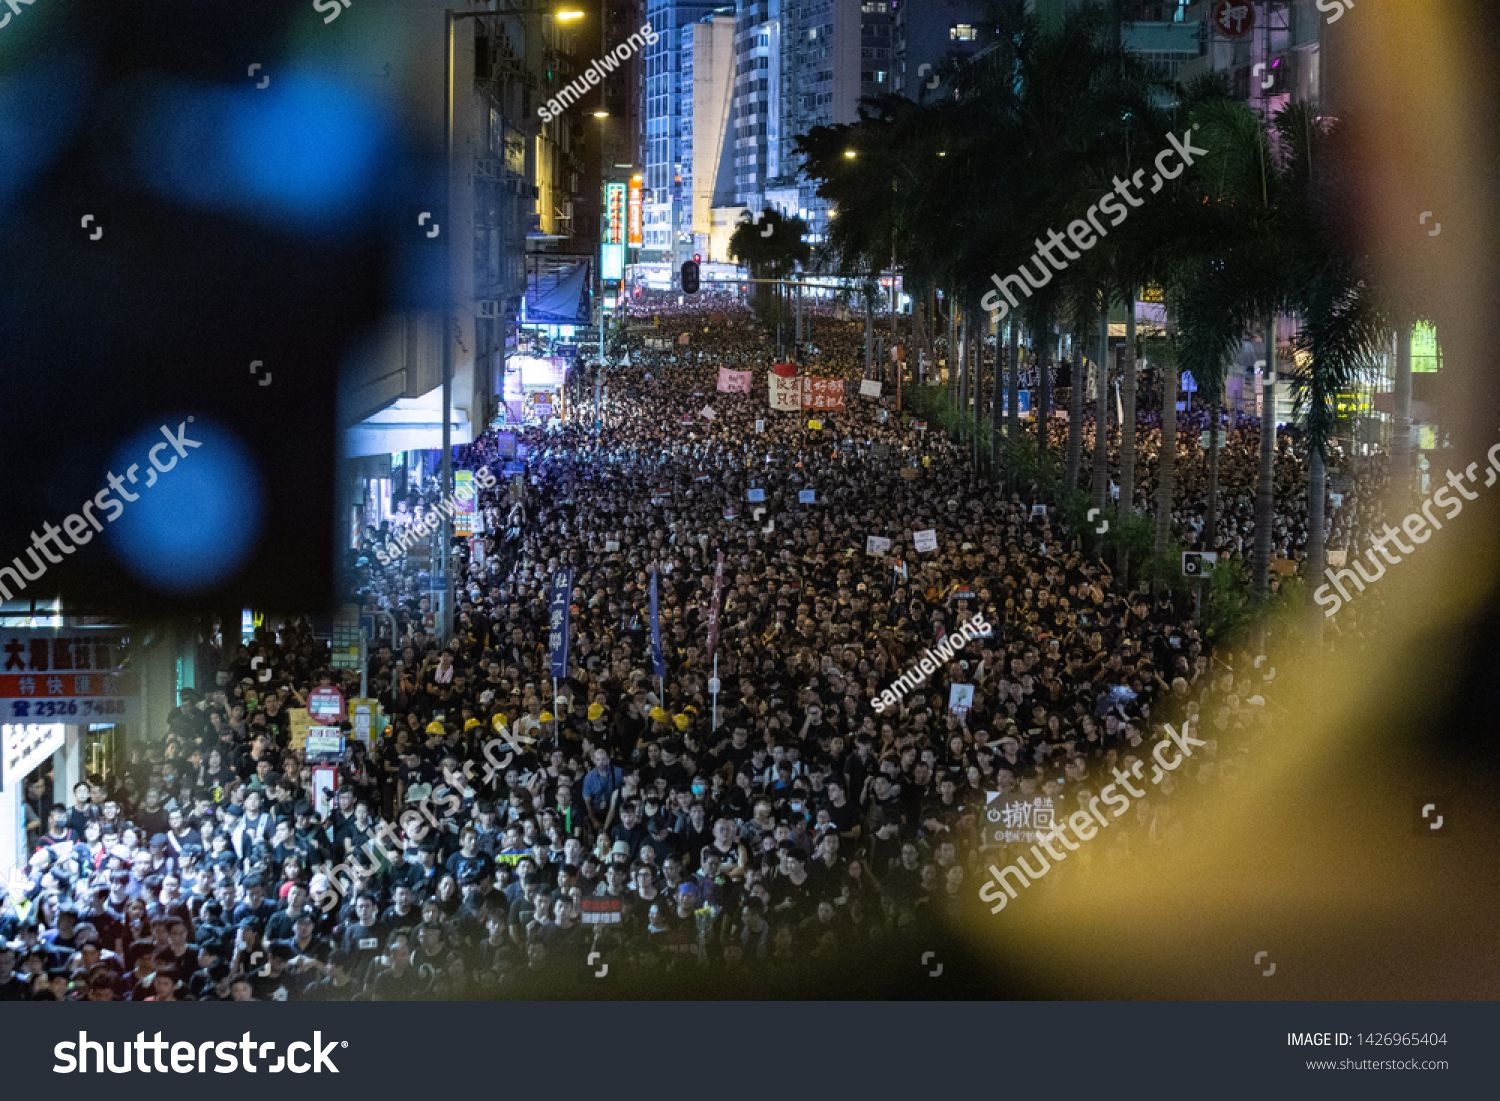 Hong Kong June 16th 2019 Anti Extradition Bill Protest With 2 Millions People In Hong Kong Protest Demands The Law Amen Stock Photos Photo Editing Abstract